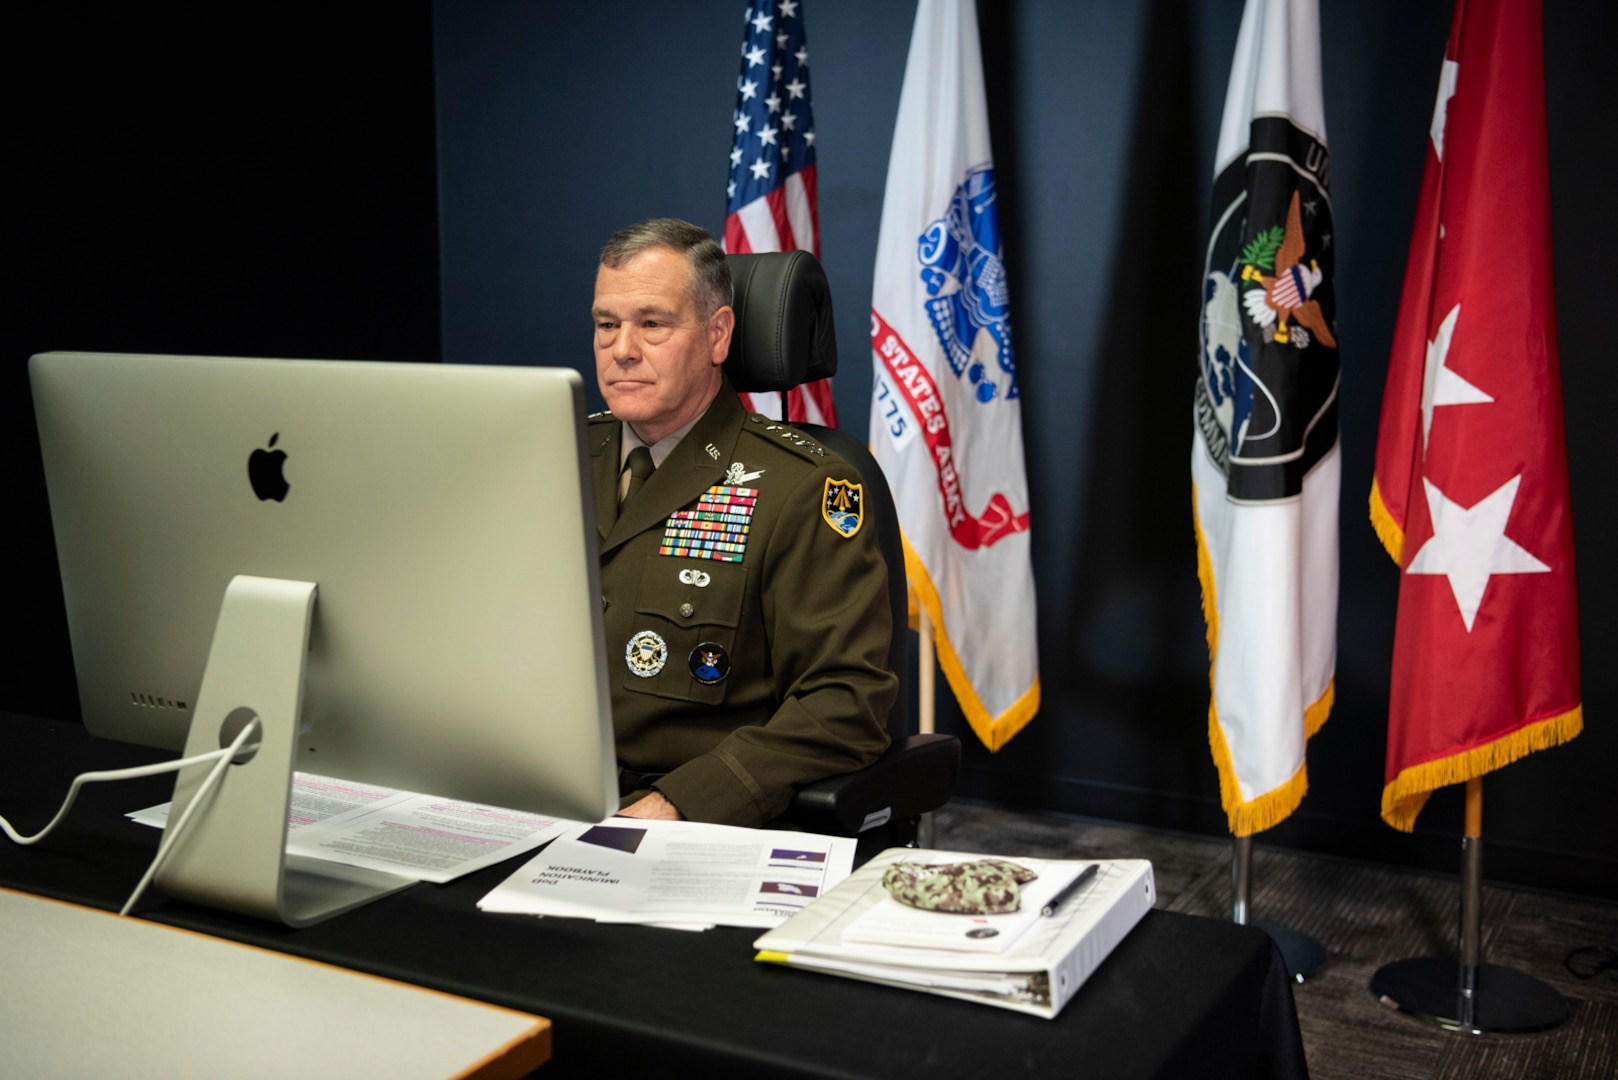 U.S. Army Gen. James H. Dickinson, USSPACECOM commander, participates in a virtual Space Symposium 365 event Nov. 5, 2020, at the combatant command's headquarters at Peterson Air Force Base, Colorado.